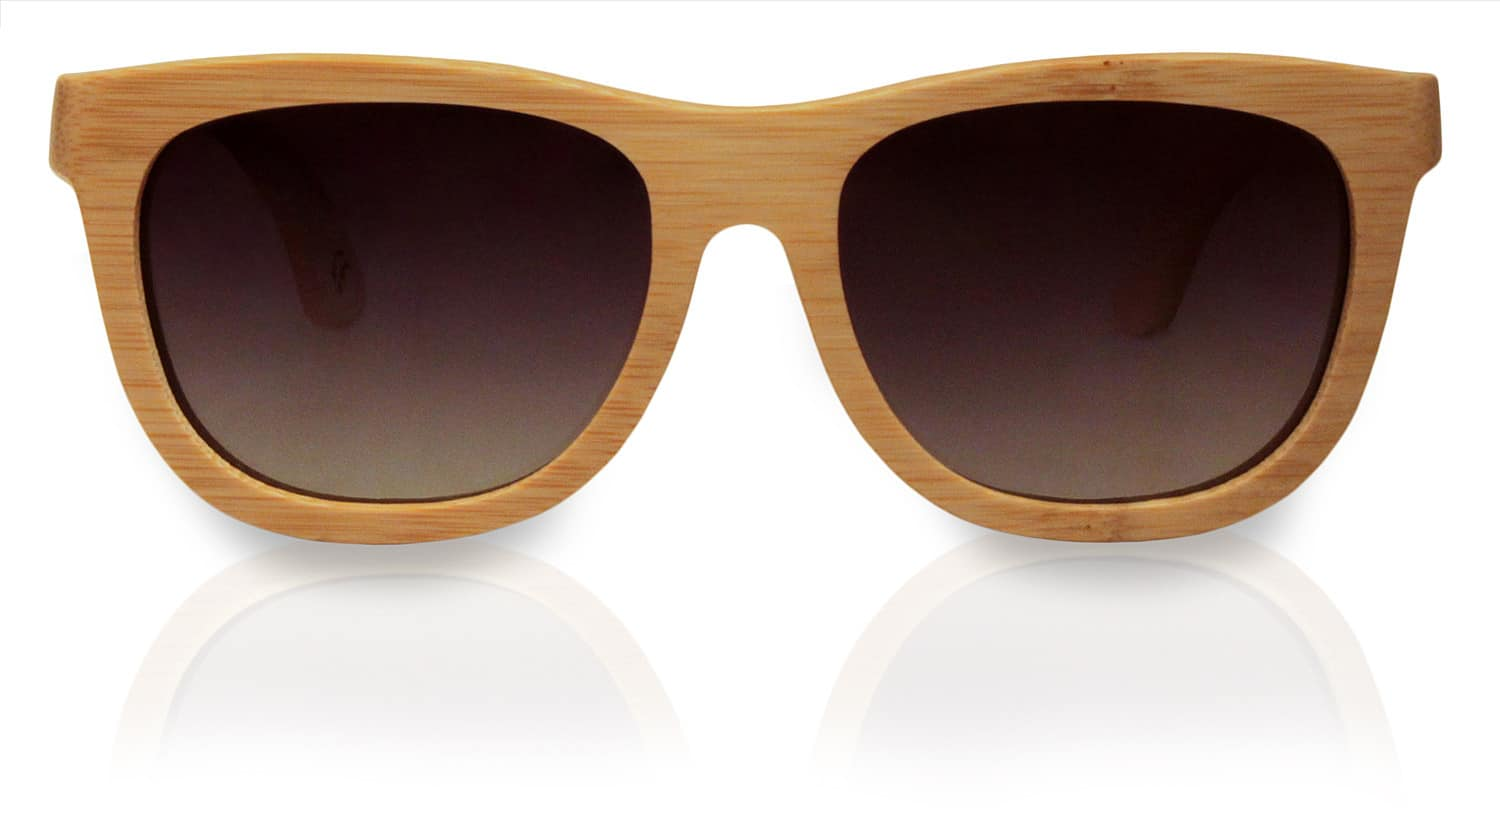 Holz Sonnenbrille Overseer Wheat 4iyejSMD